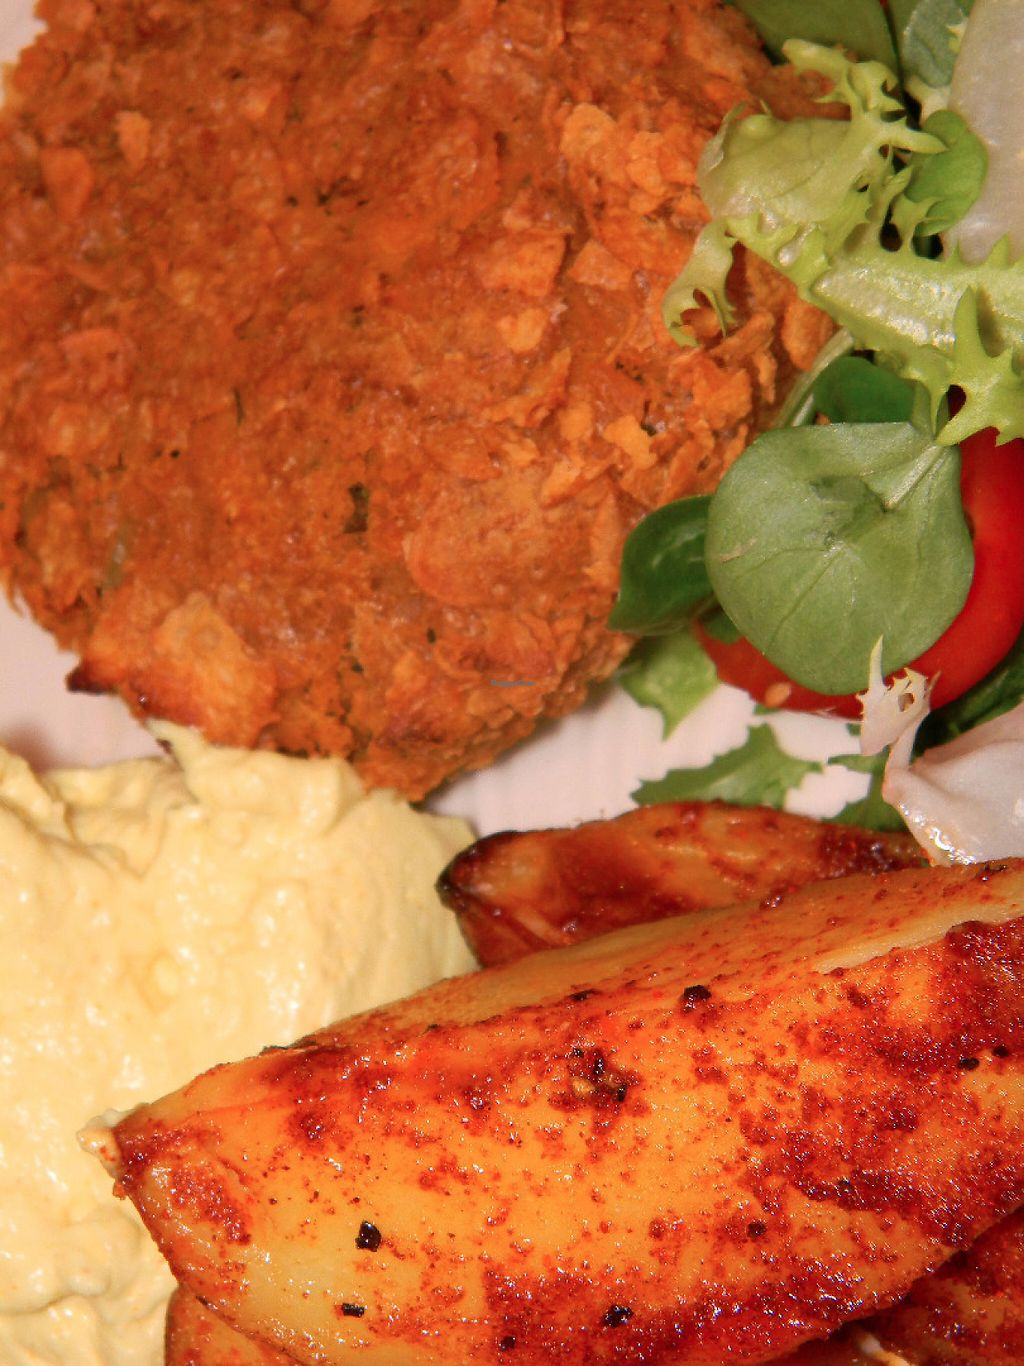 """Photo of Gabriele's Family Food  by <a href=""""/members/profile/gabrielepanozzo"""">gabrielepanozzo</a> <br/>Chickpea burger served with spicy paprika potato wedges and vegan garlic mayo <br/> May 7, 2017  - <a href='/contact/abuse/image/91733/256598'>Report</a>"""